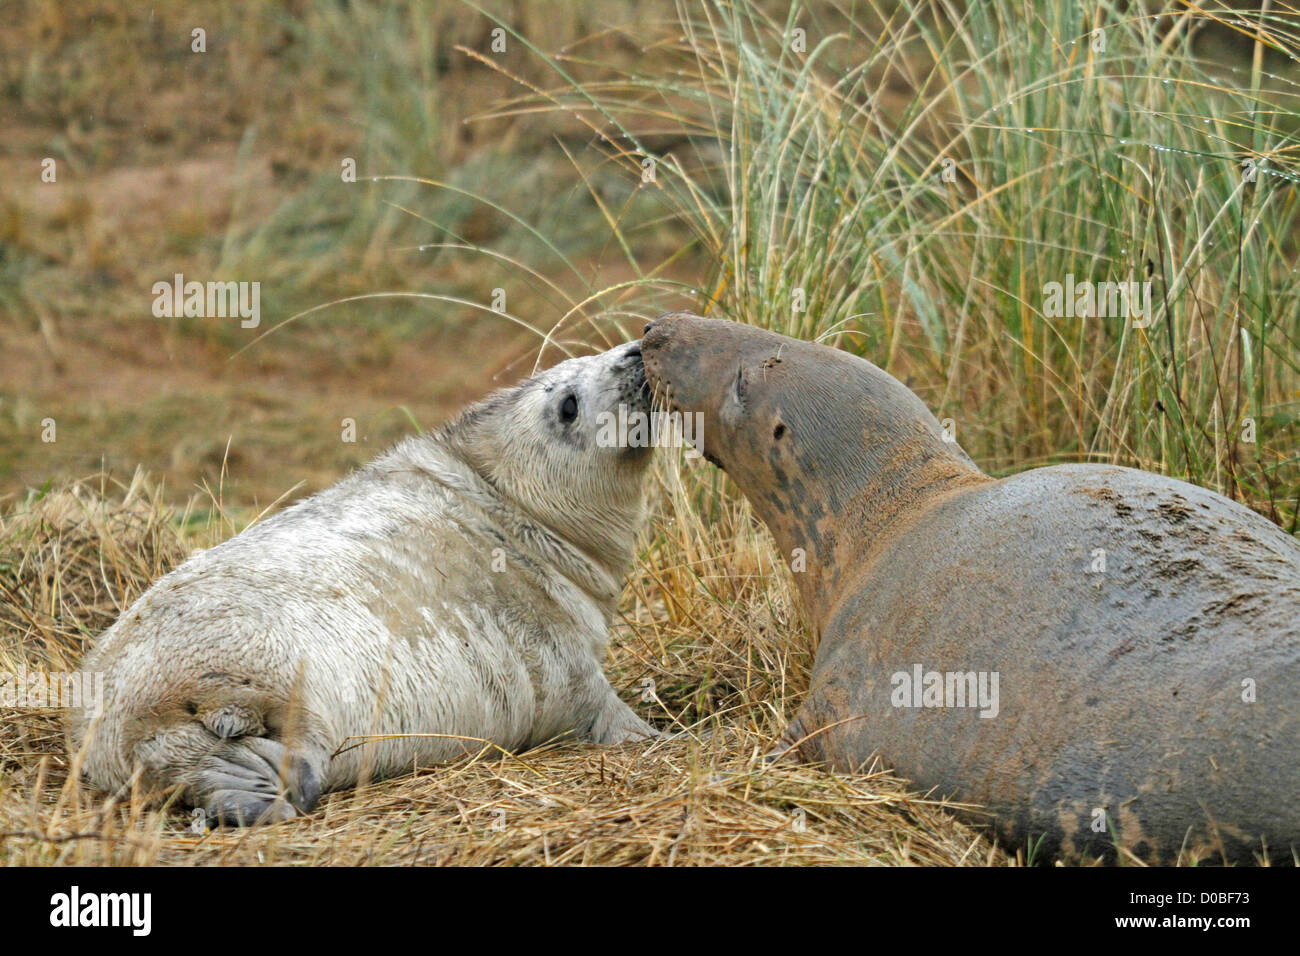 grey seal pup with mother (Halichoerus grypos) Stock Photo